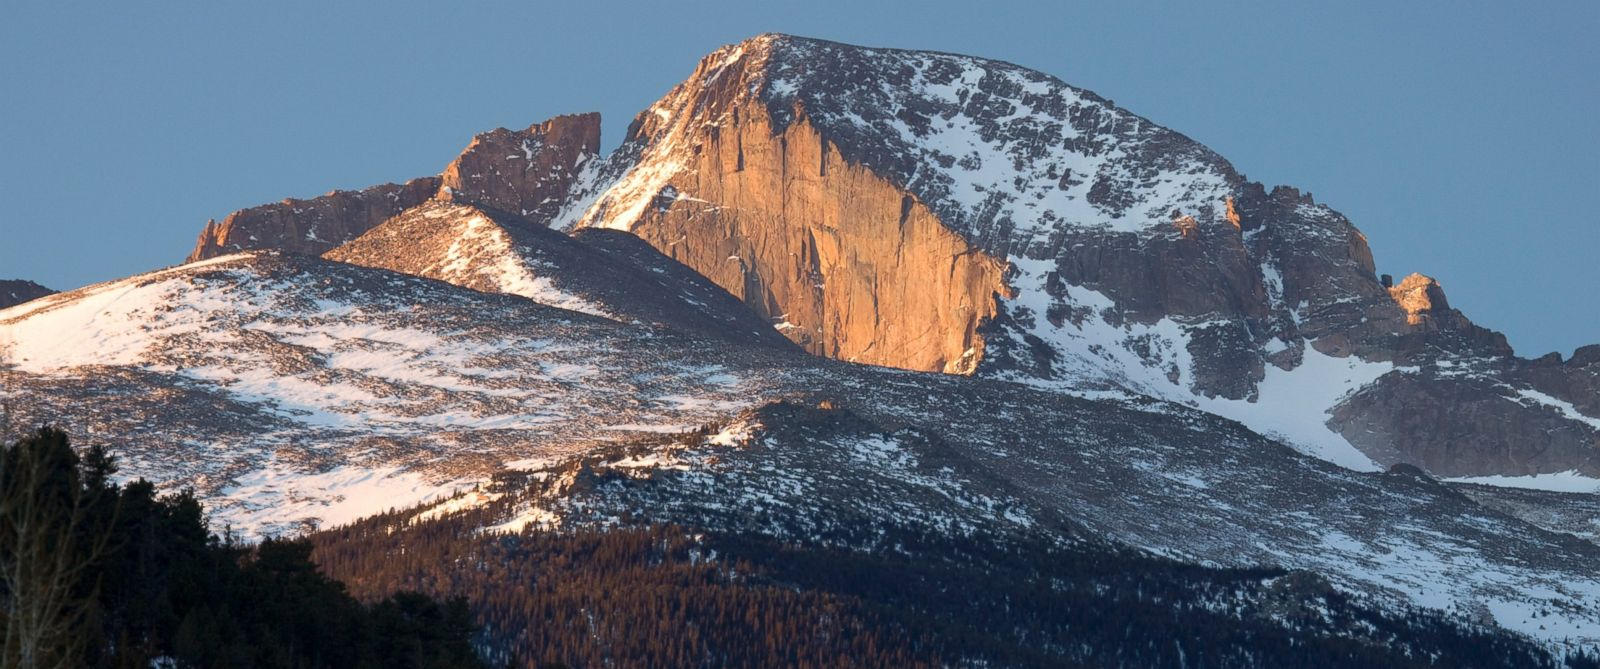 PHOTO: A climber was stuck 13,000 ft up on the face of Longs Peak.